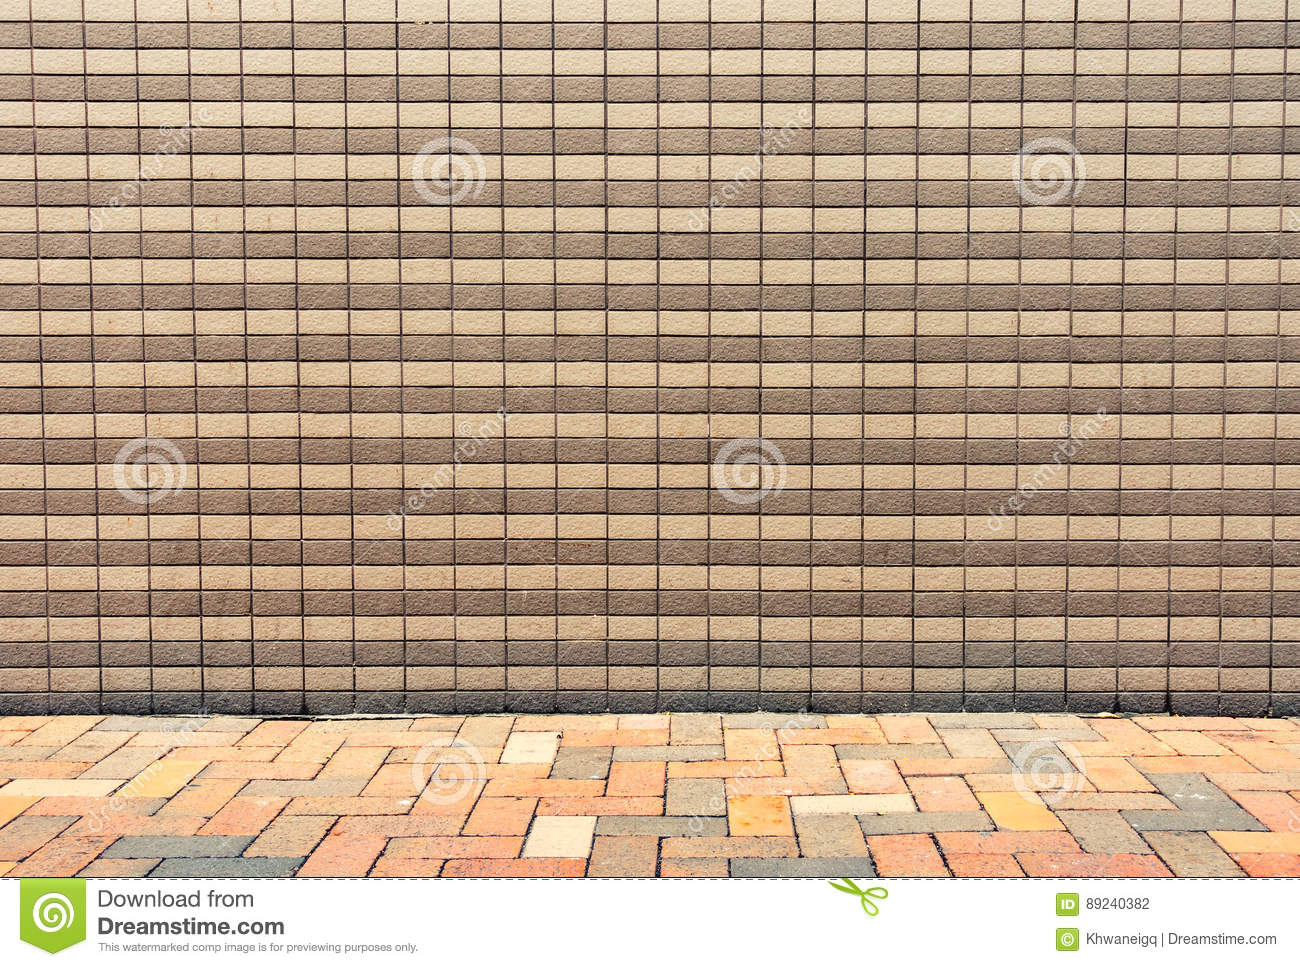 Ceramic tile background on exterior wall abstract background royalty free stock photo download ceramic tile background on exterior wall doublecrazyfo Image collections